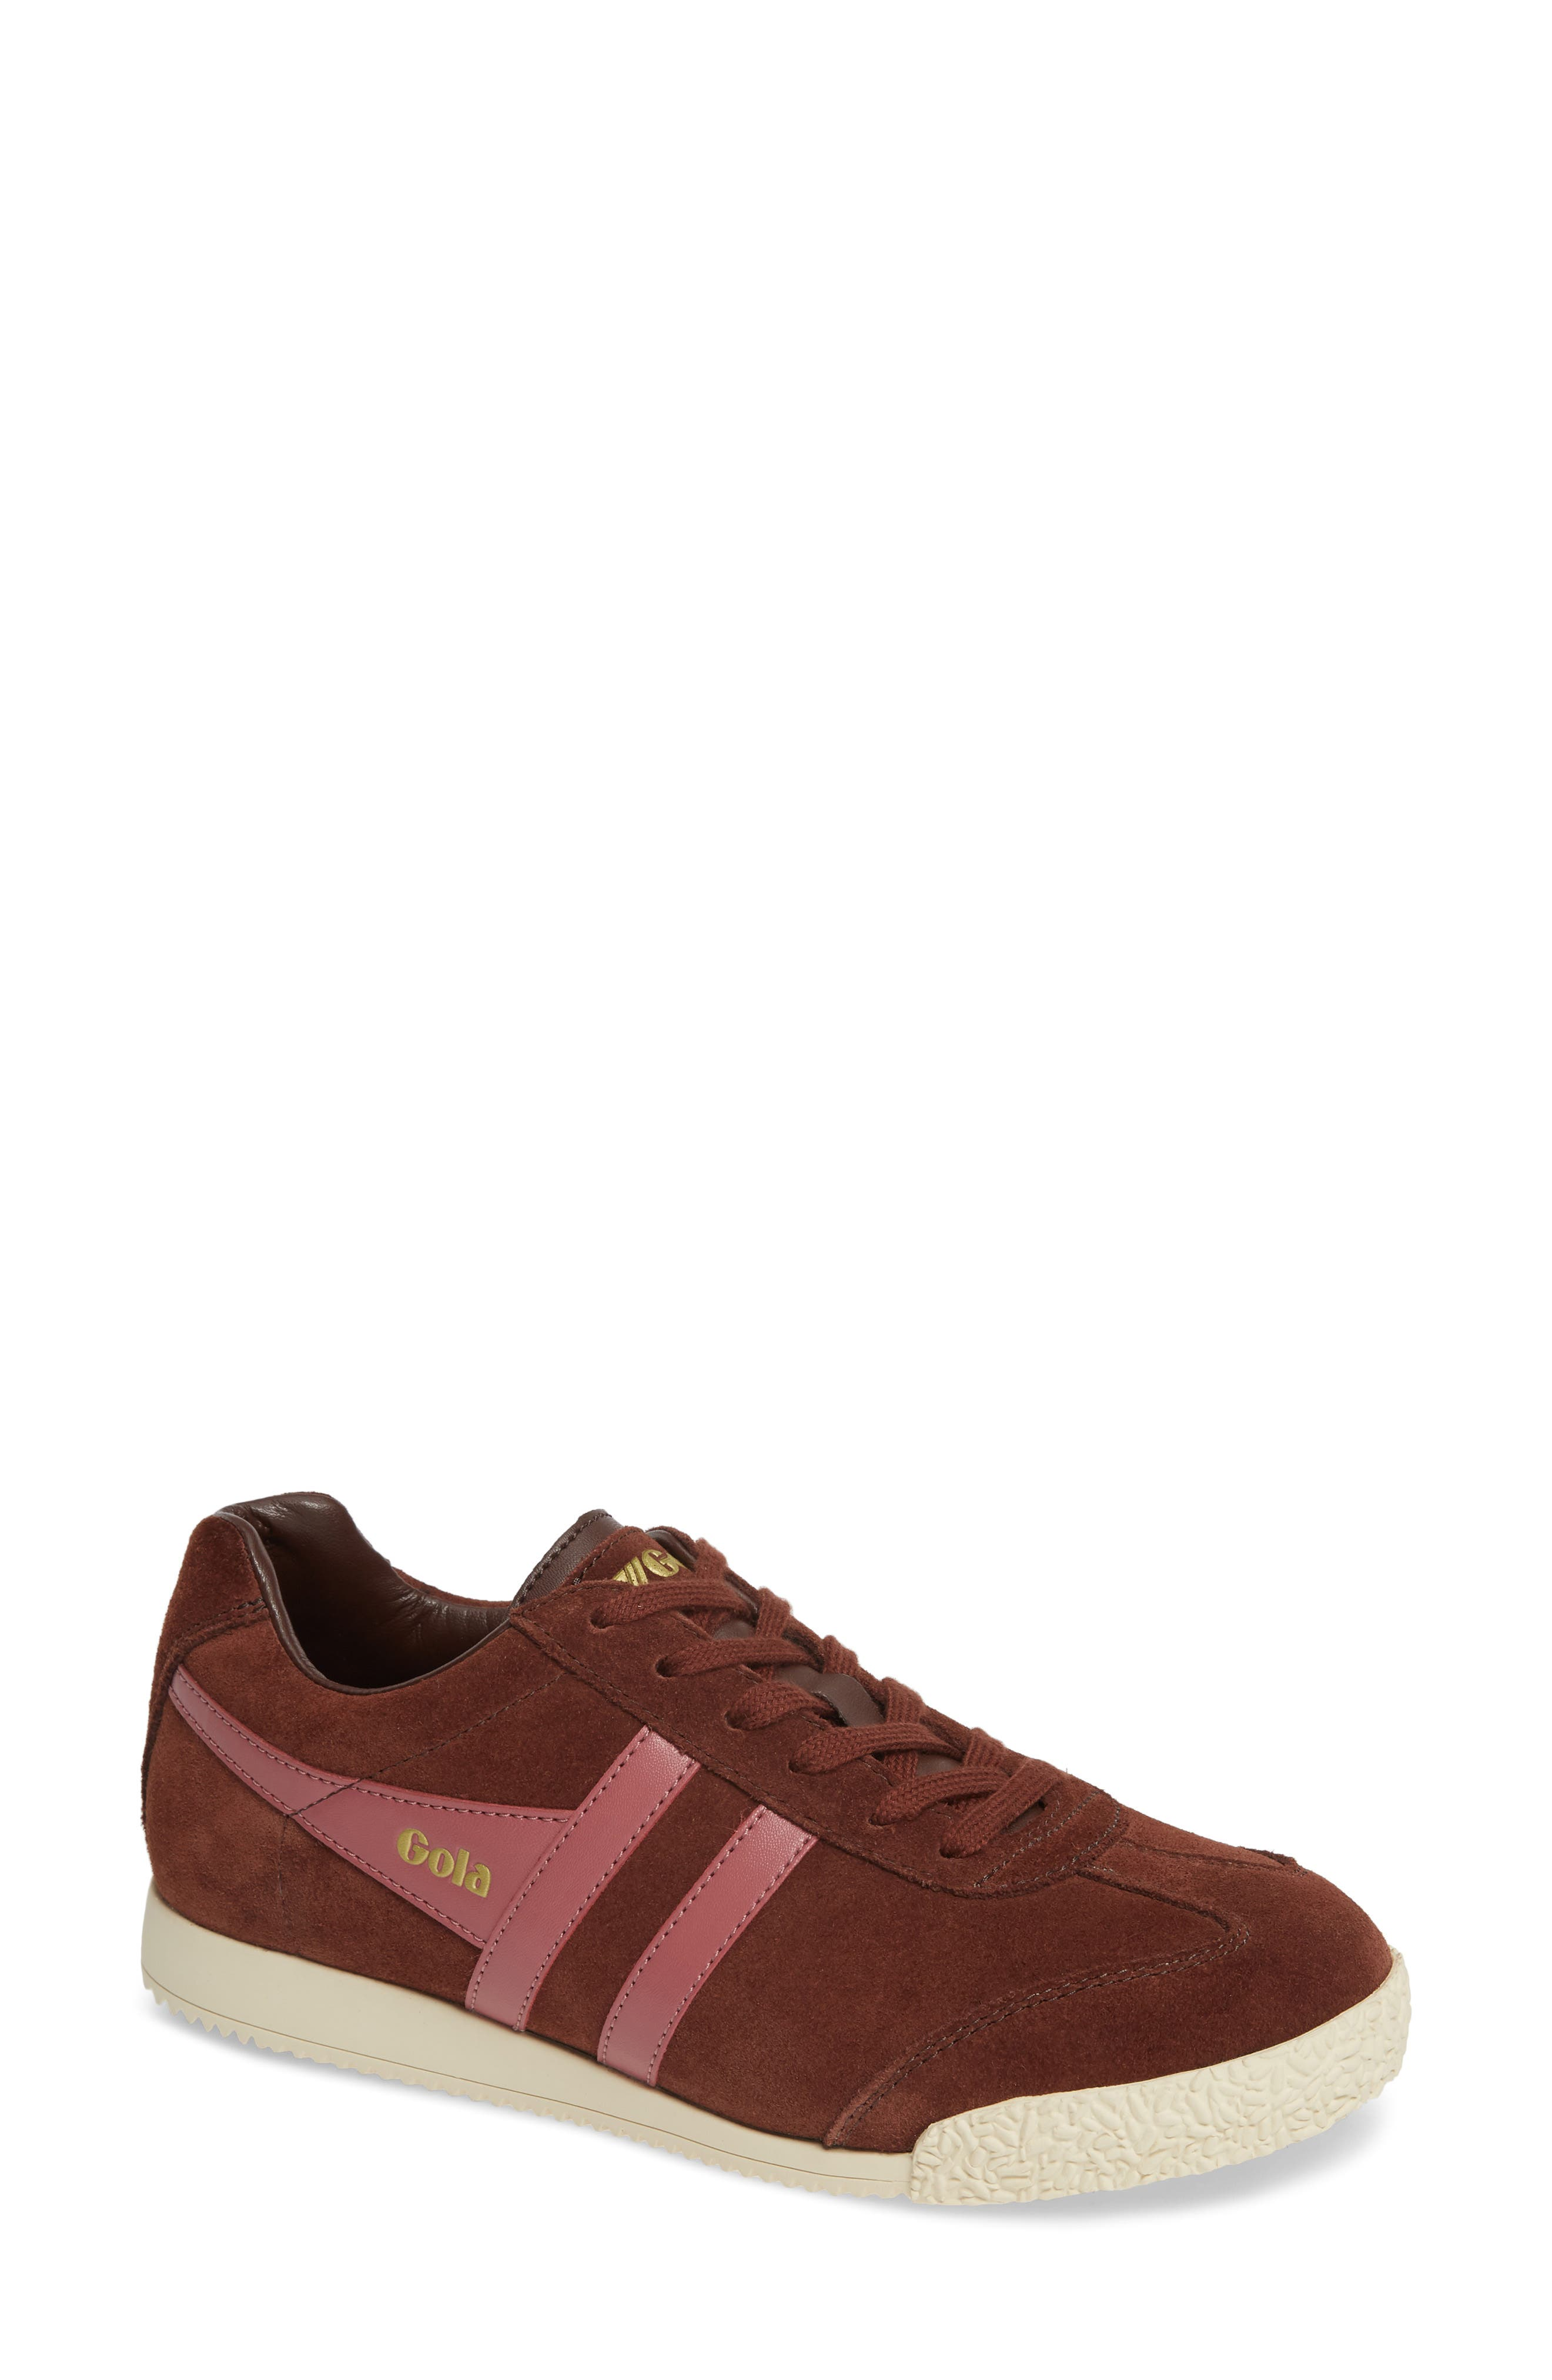 Harrier Suede Low Top Sneaker,                         Main,                         color, COGNAC/ DUSTY ROSE